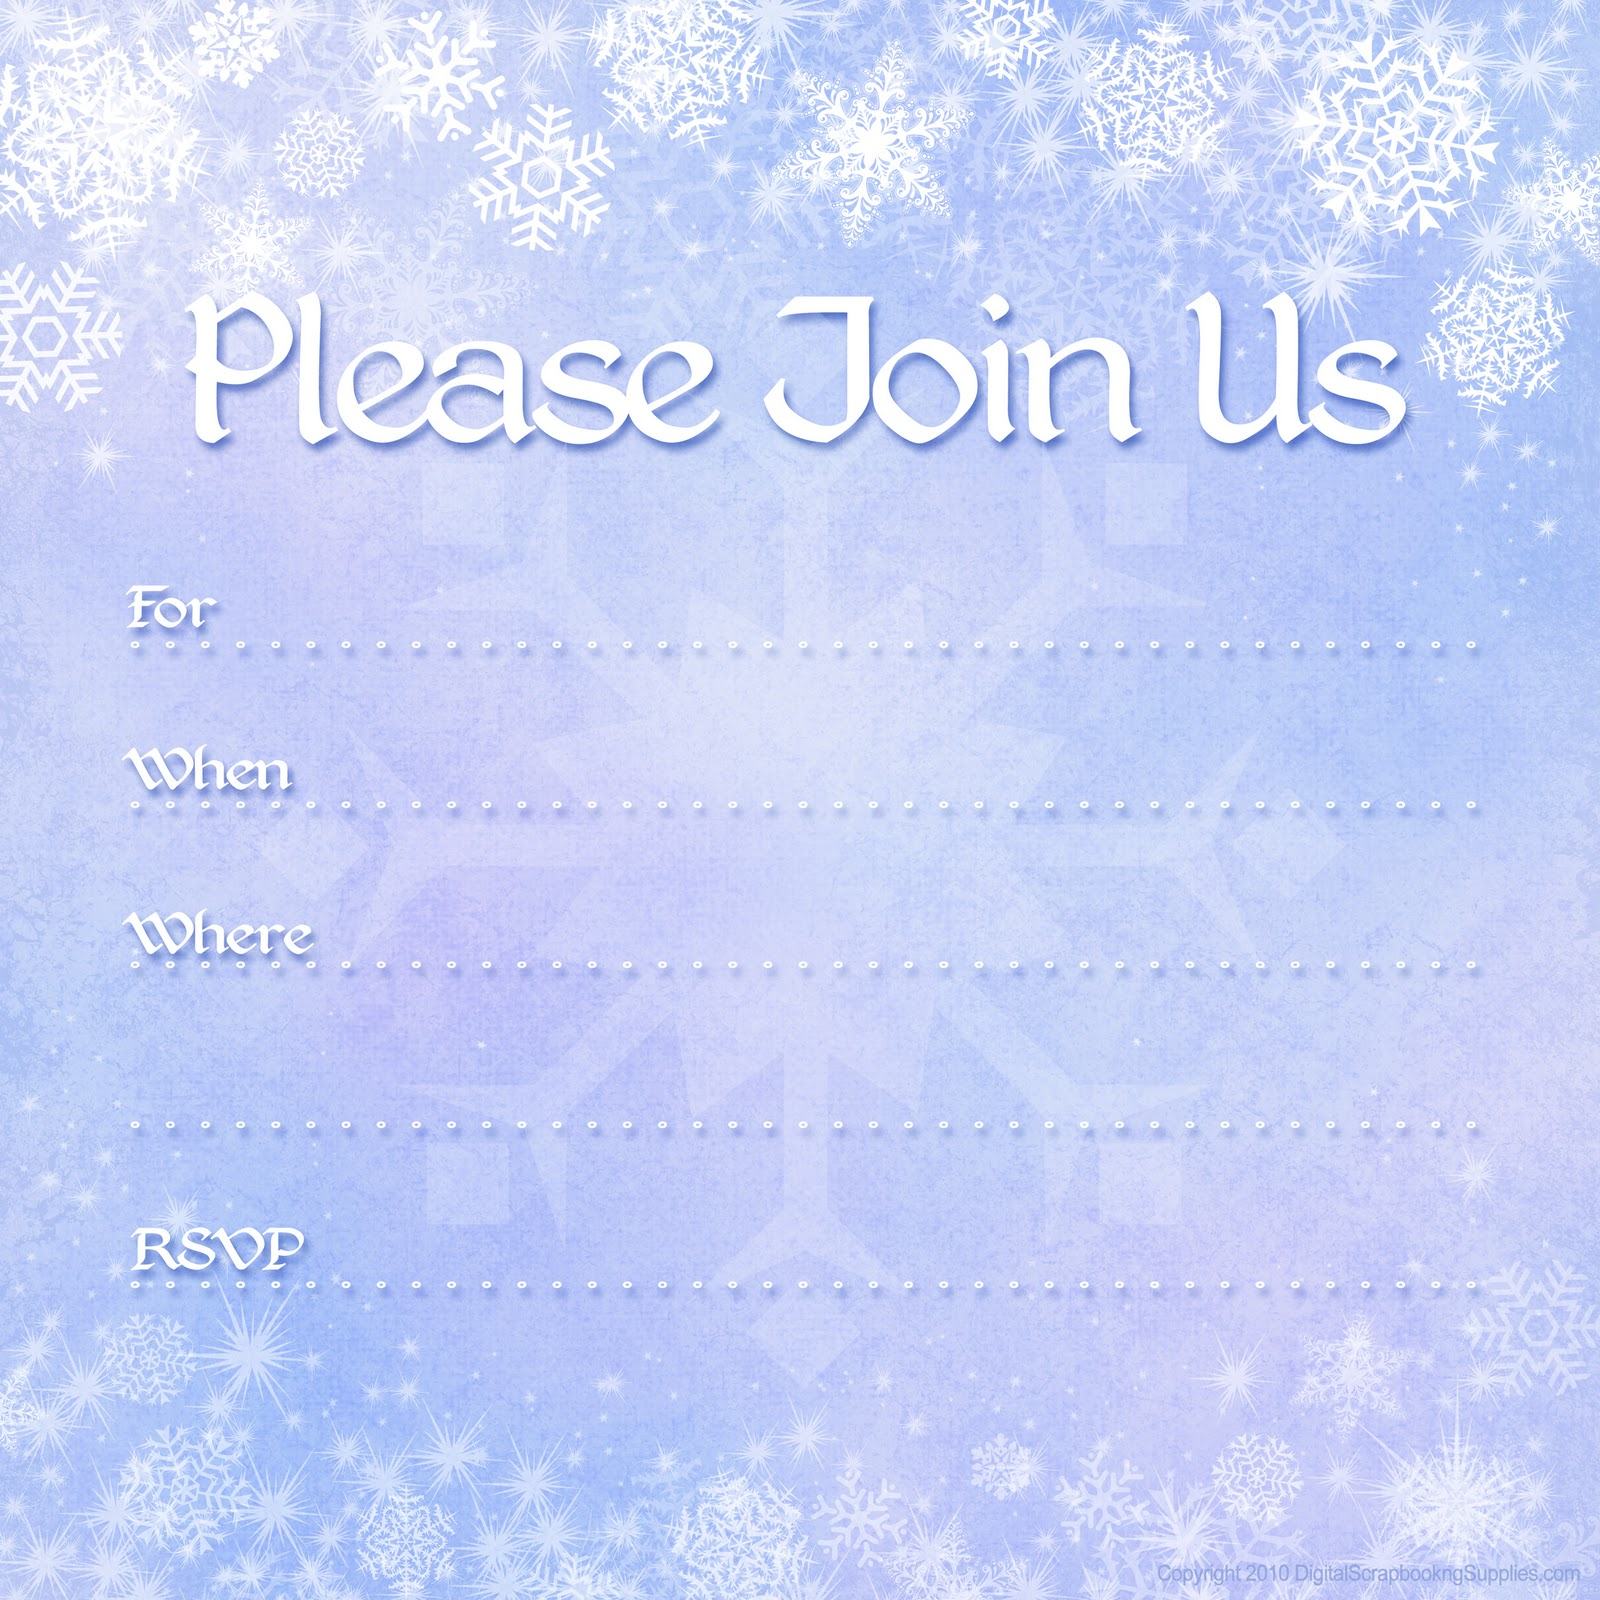 Permalink to invitations templates